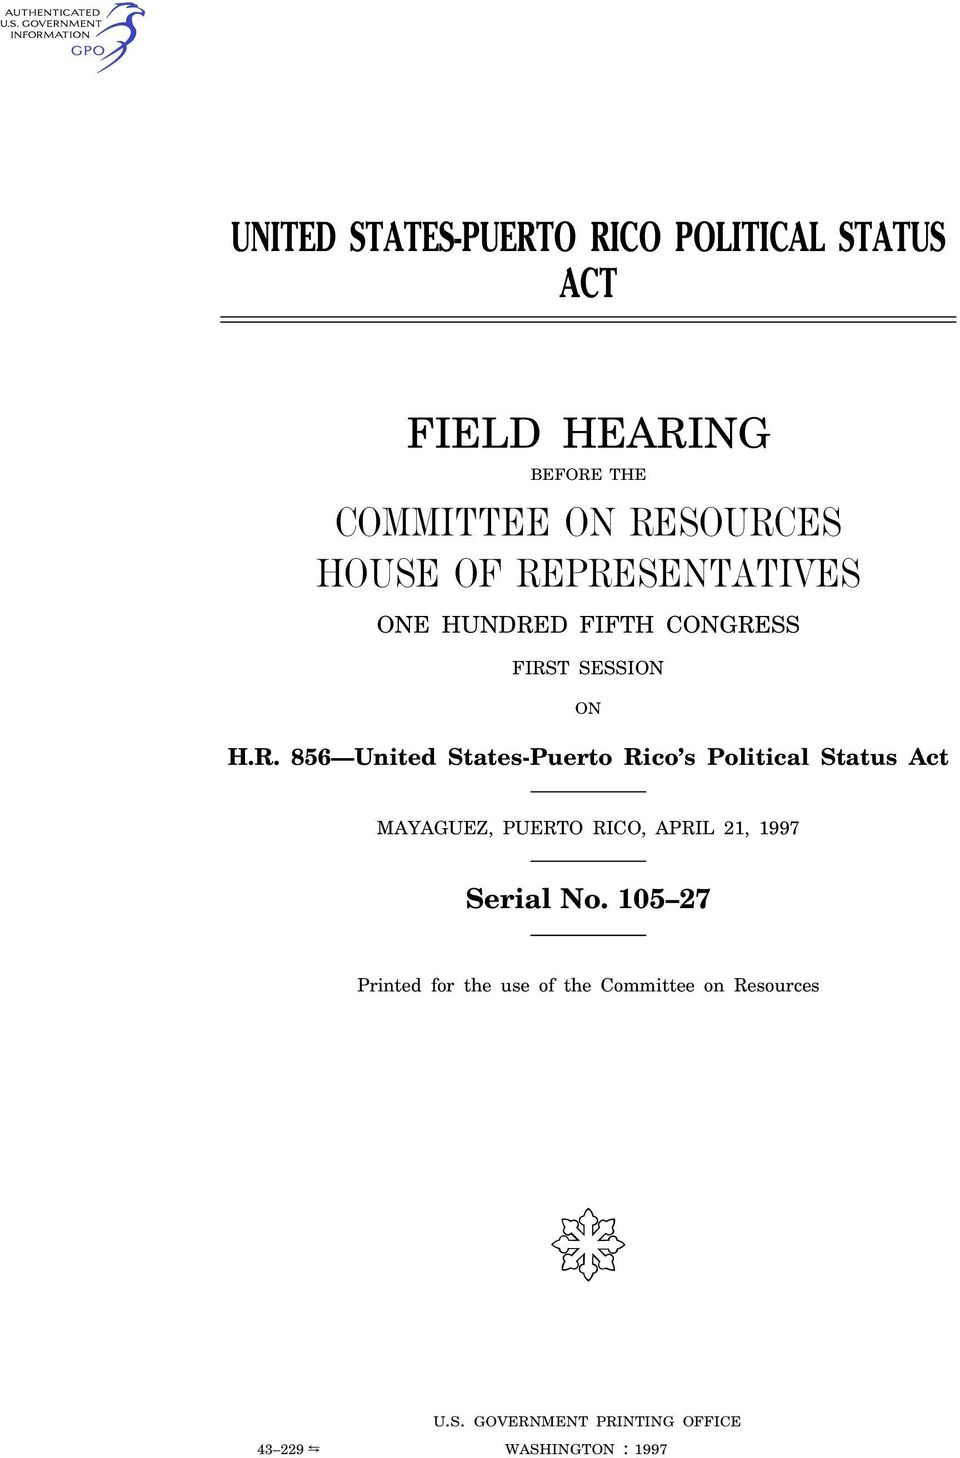 PRESENTATIVES ONE HUNDRED FIFTH CONGRESS FIRST SESSION ON H.R. 856 United States-Puerto Rico s